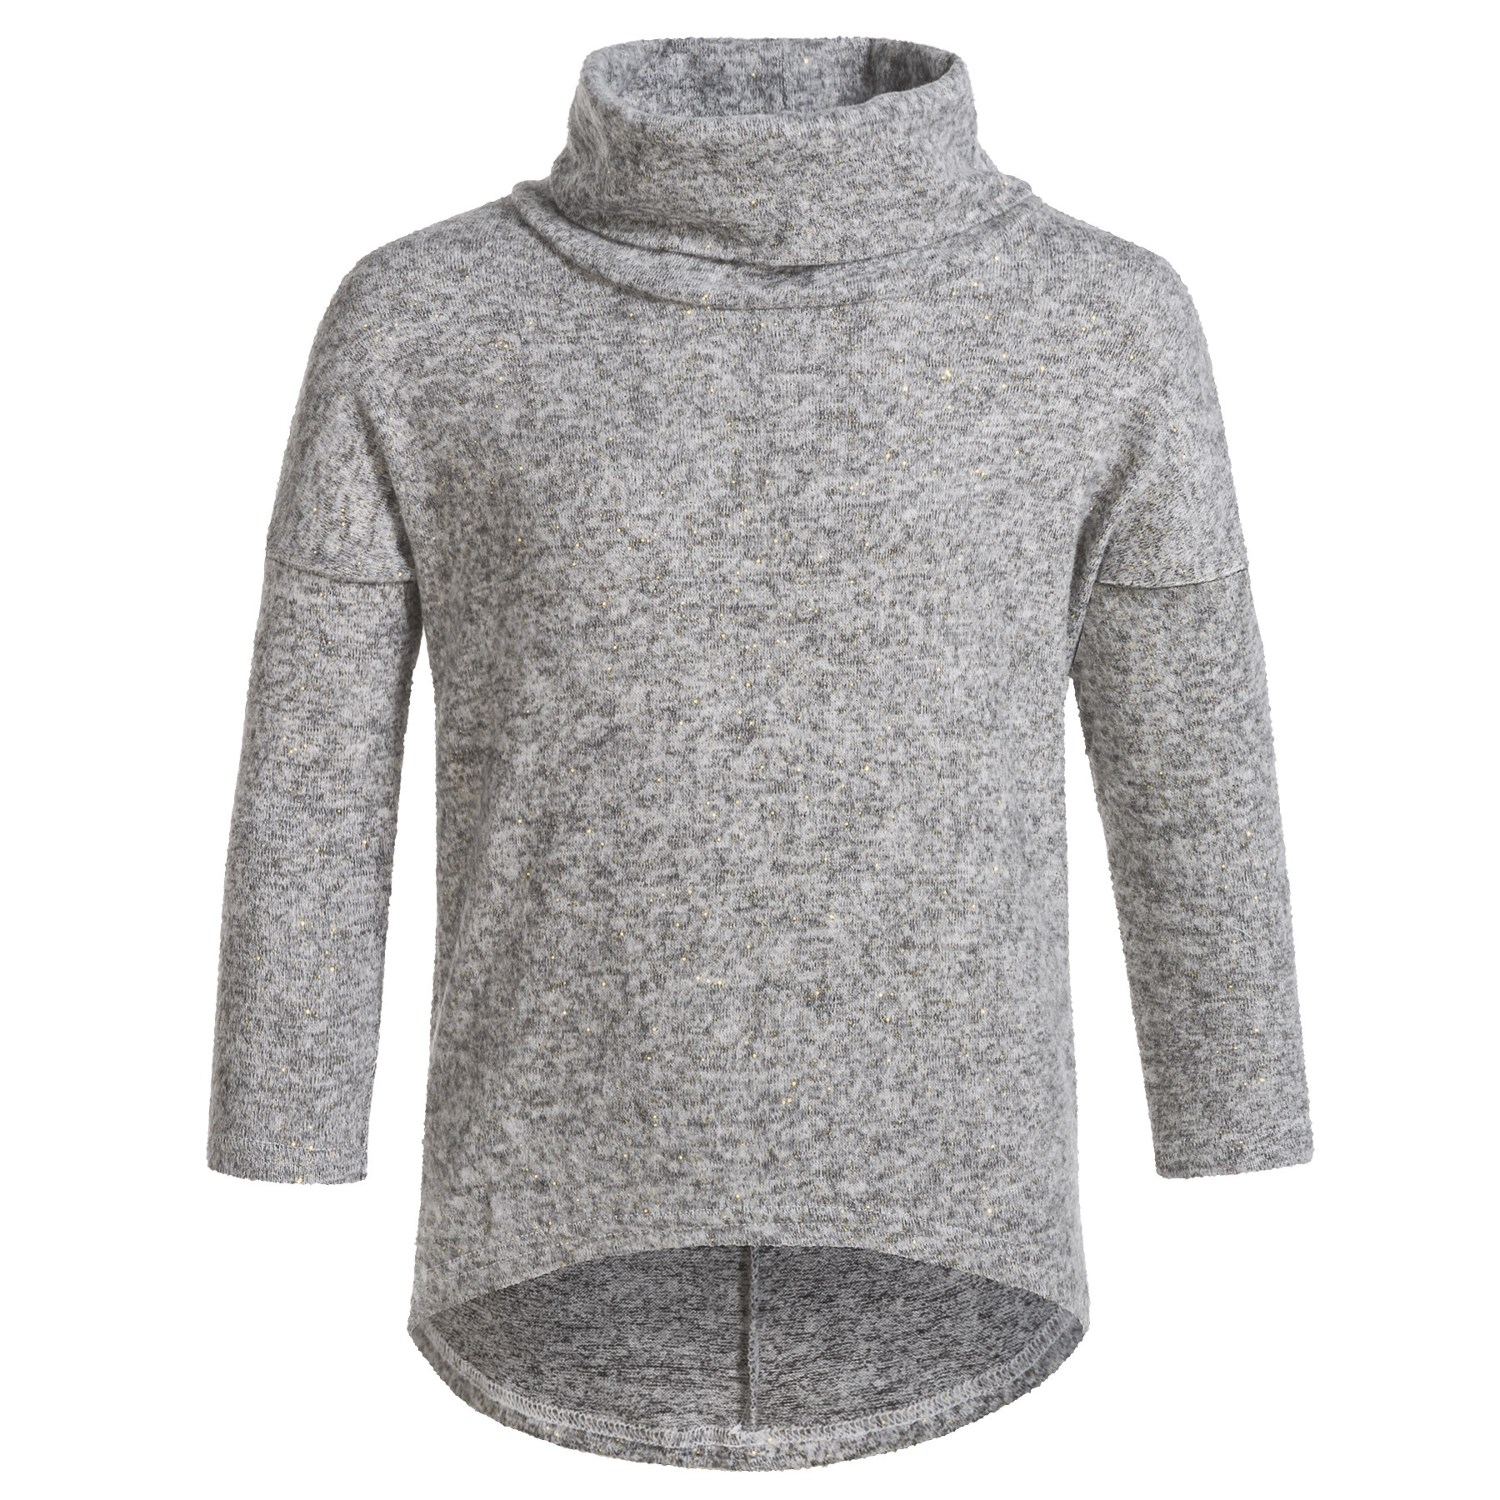 Poof Cowl Neck Sweater (For Girls) - Save 44%